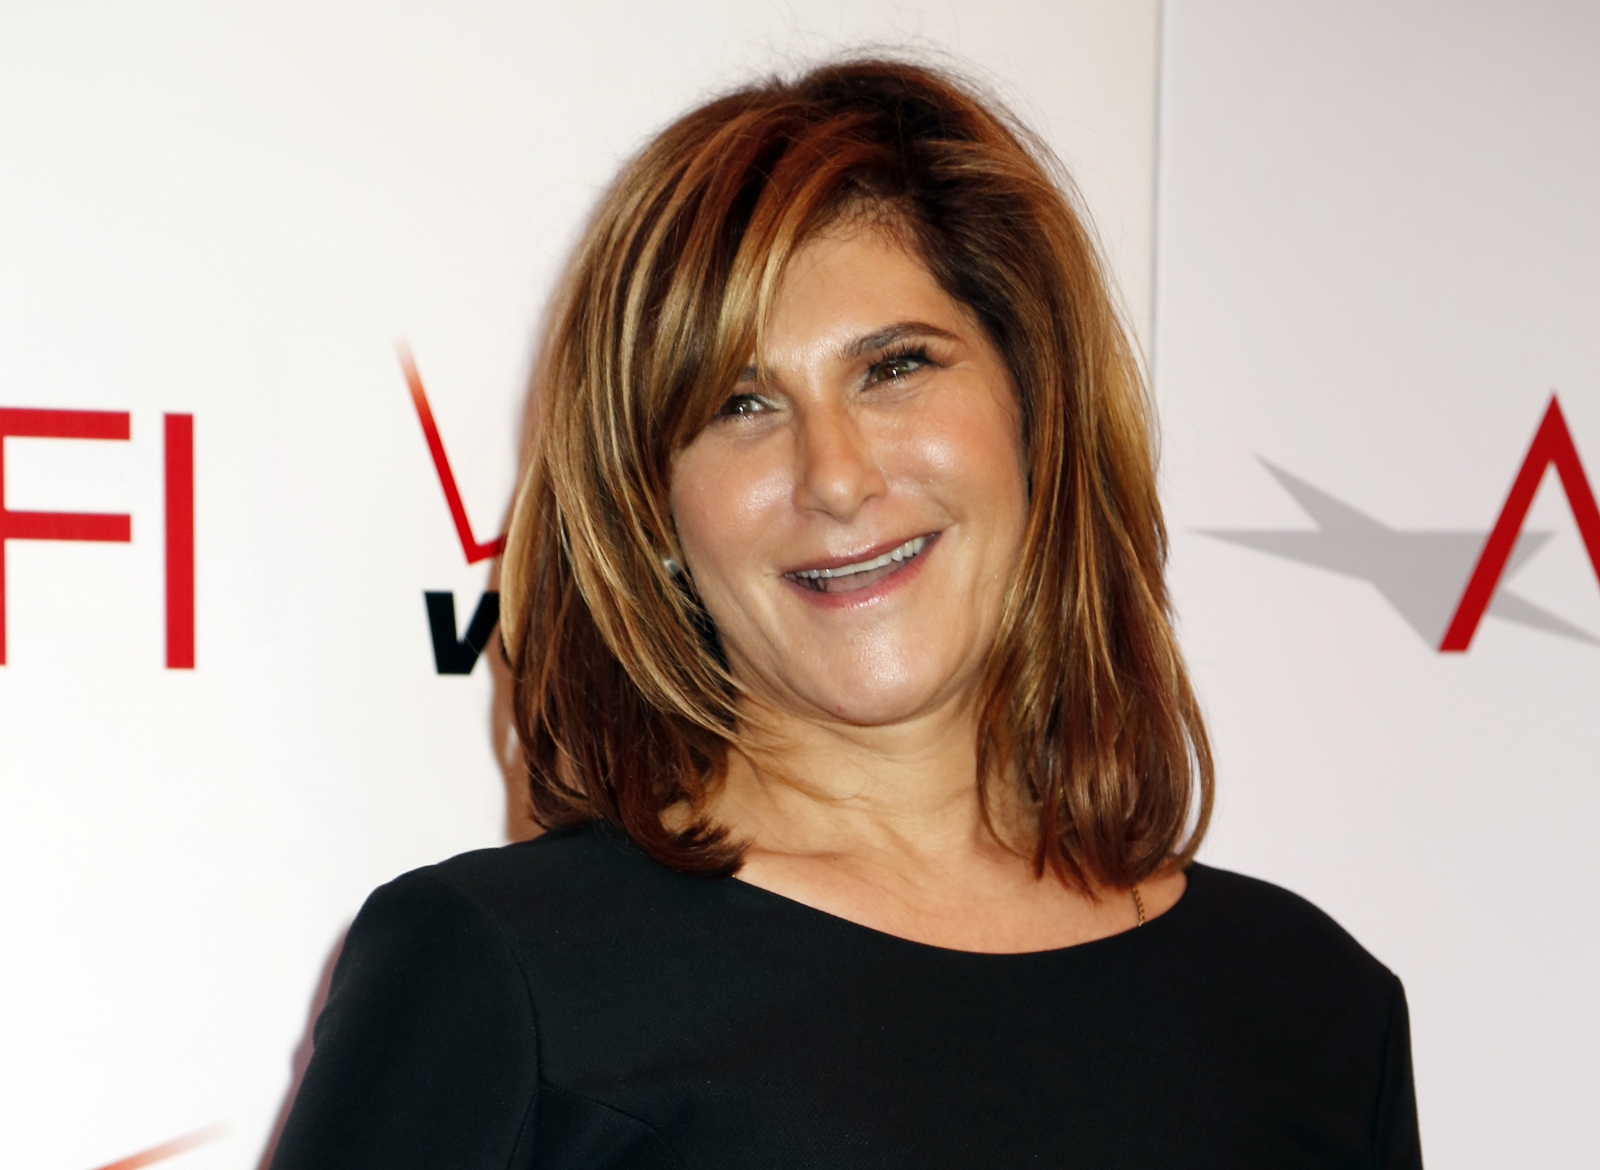 Amy Pascal has quit as head of Sony Pictures after hacking crisis revealed email barbs at Angelina Jolie